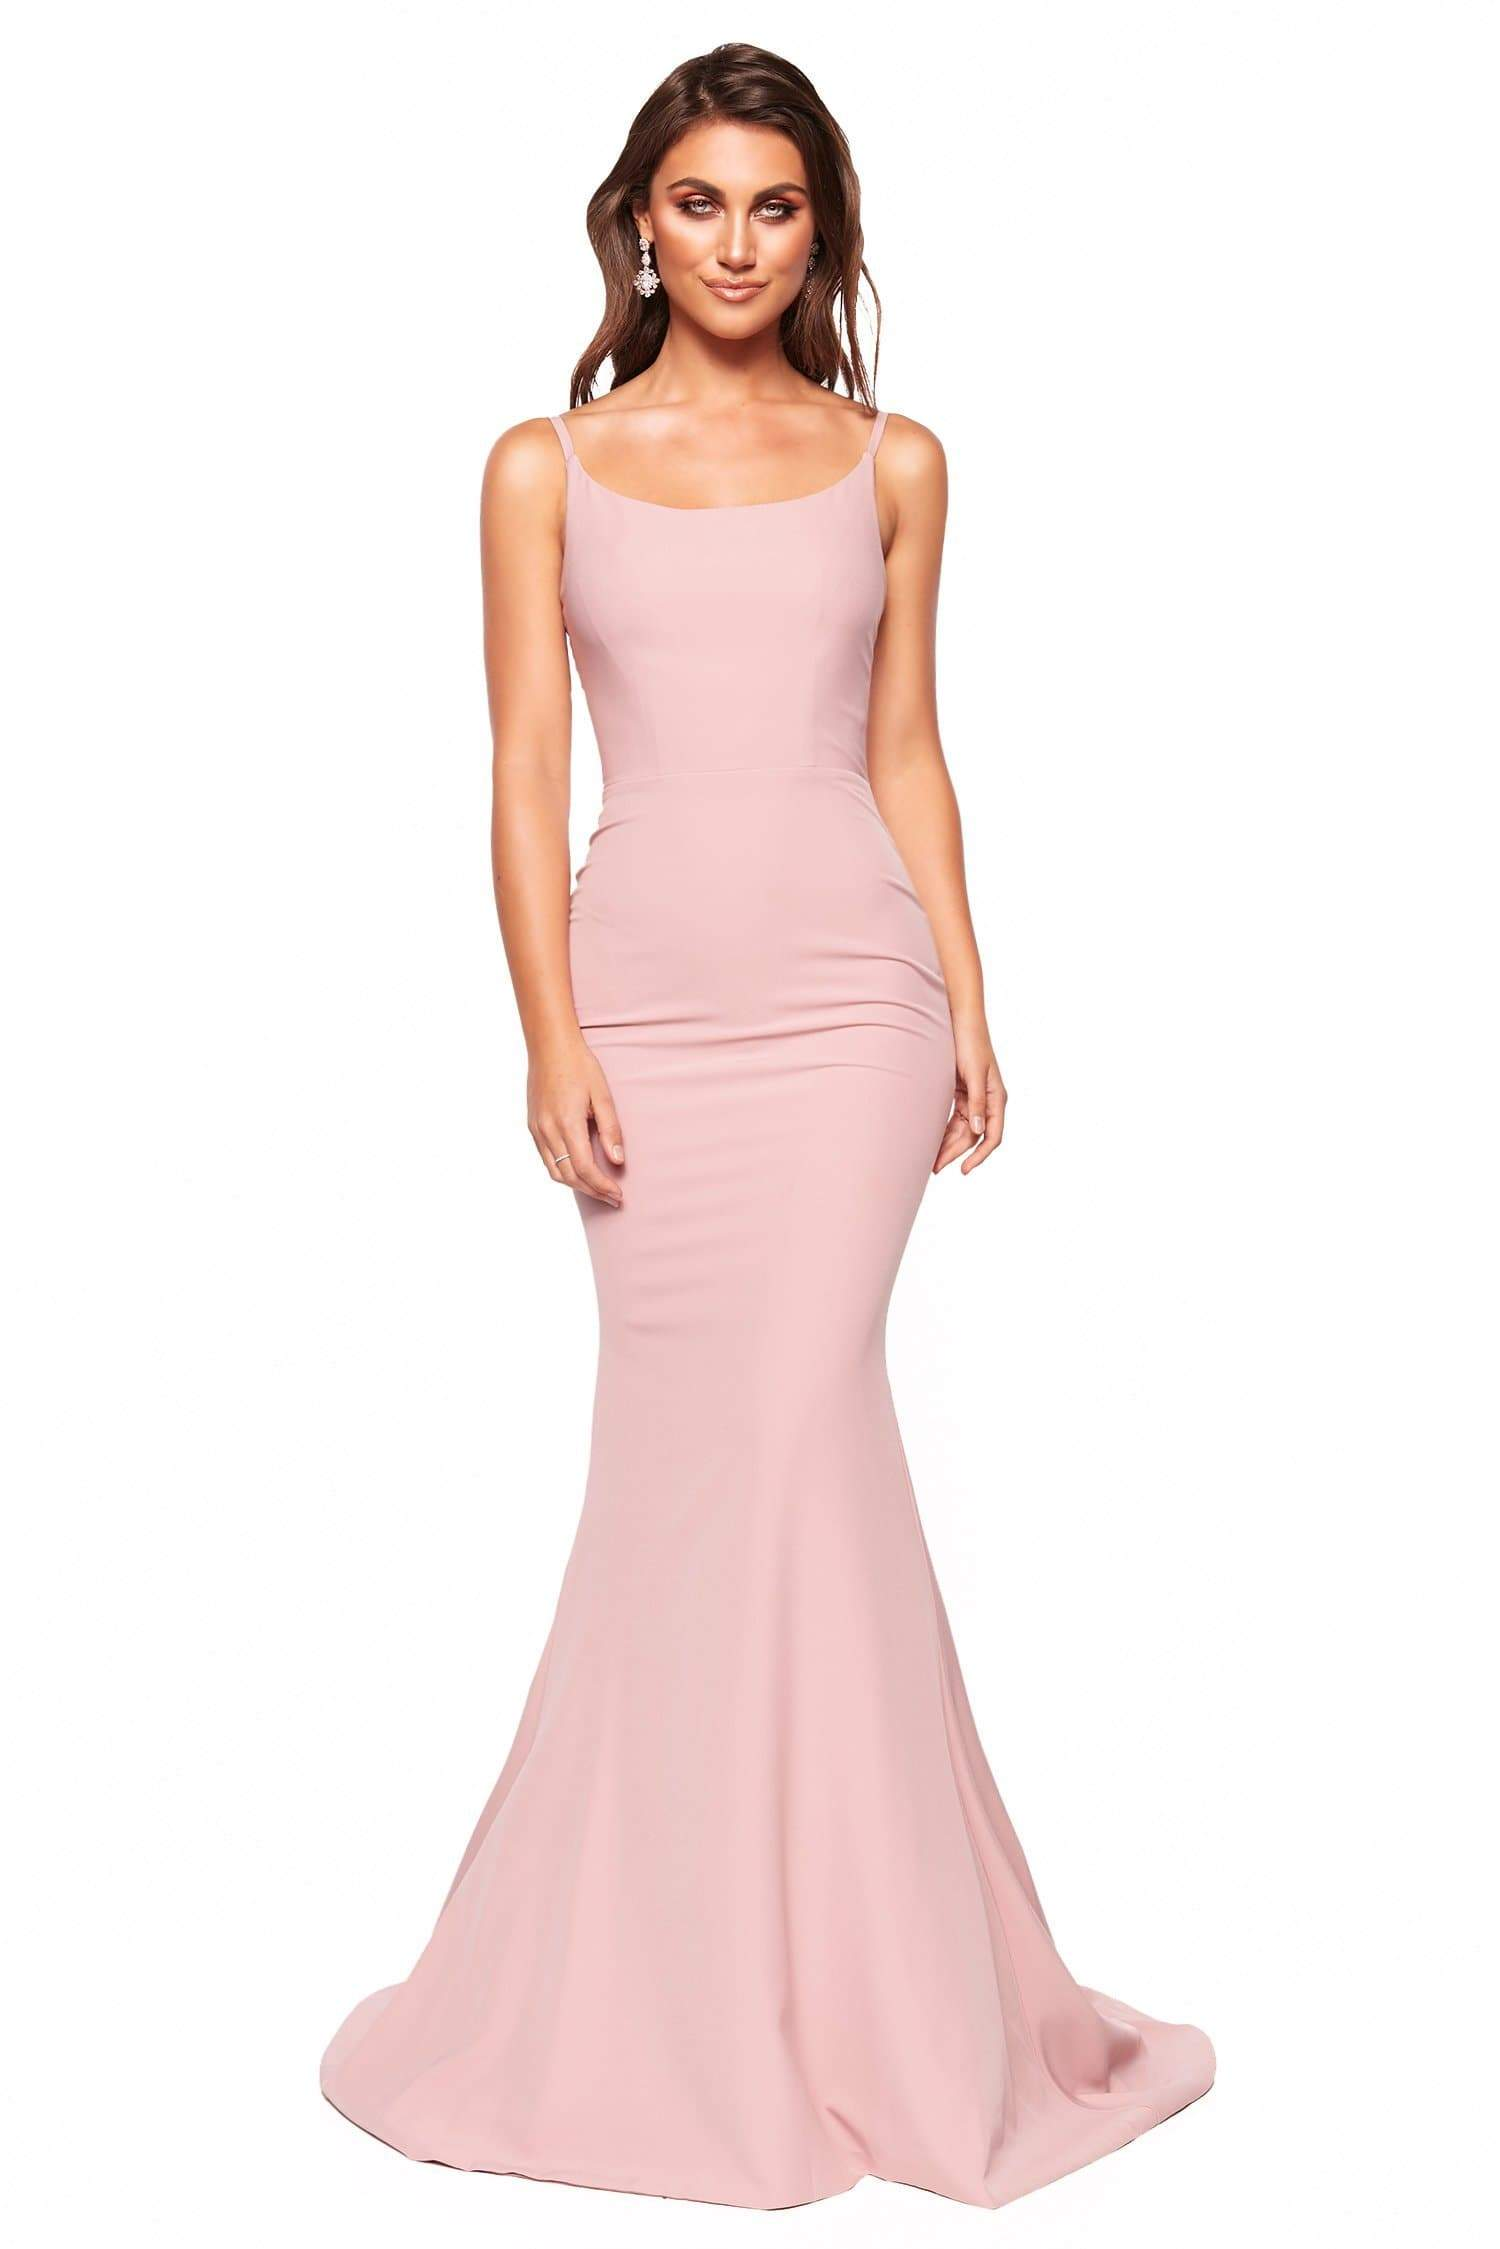 A&N Luxe Imani - Dusty Pink Mermaid Crepe Gown with Thin Straps